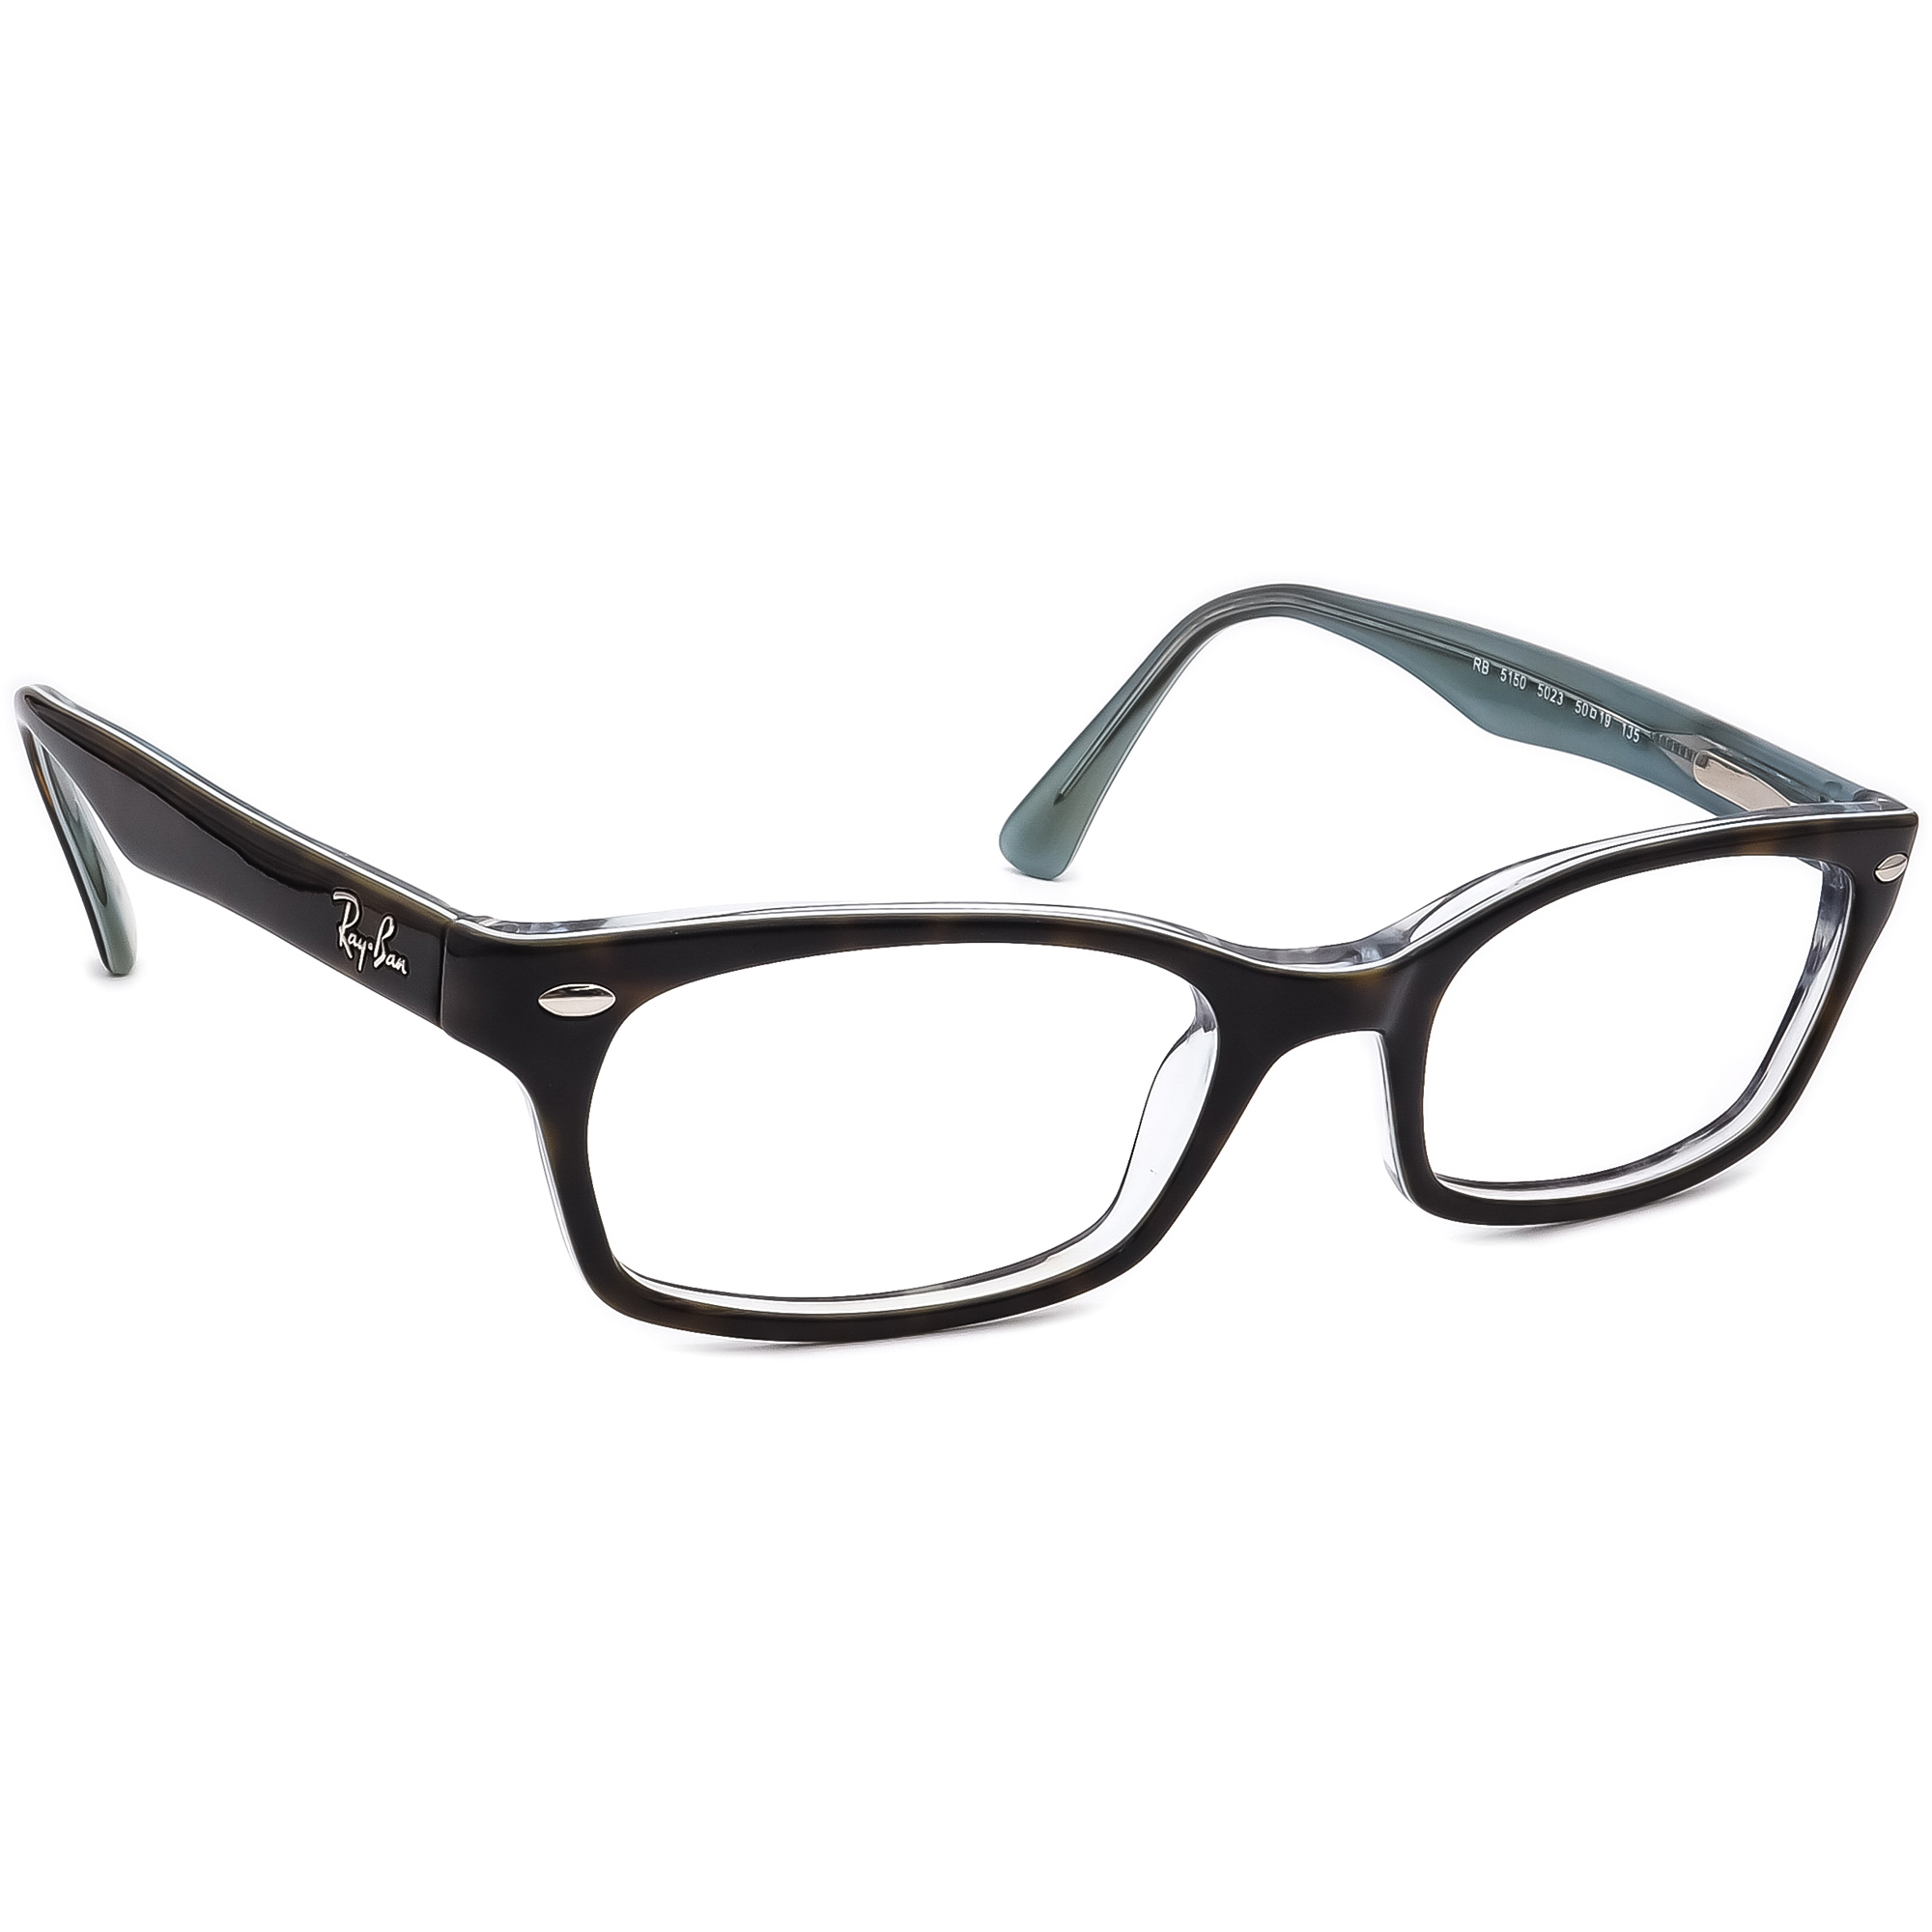 Ray Ban Eyeglasses RB 5150 5023 Dark Tortoise on Blue Horn Rim Frame 50[]19 135